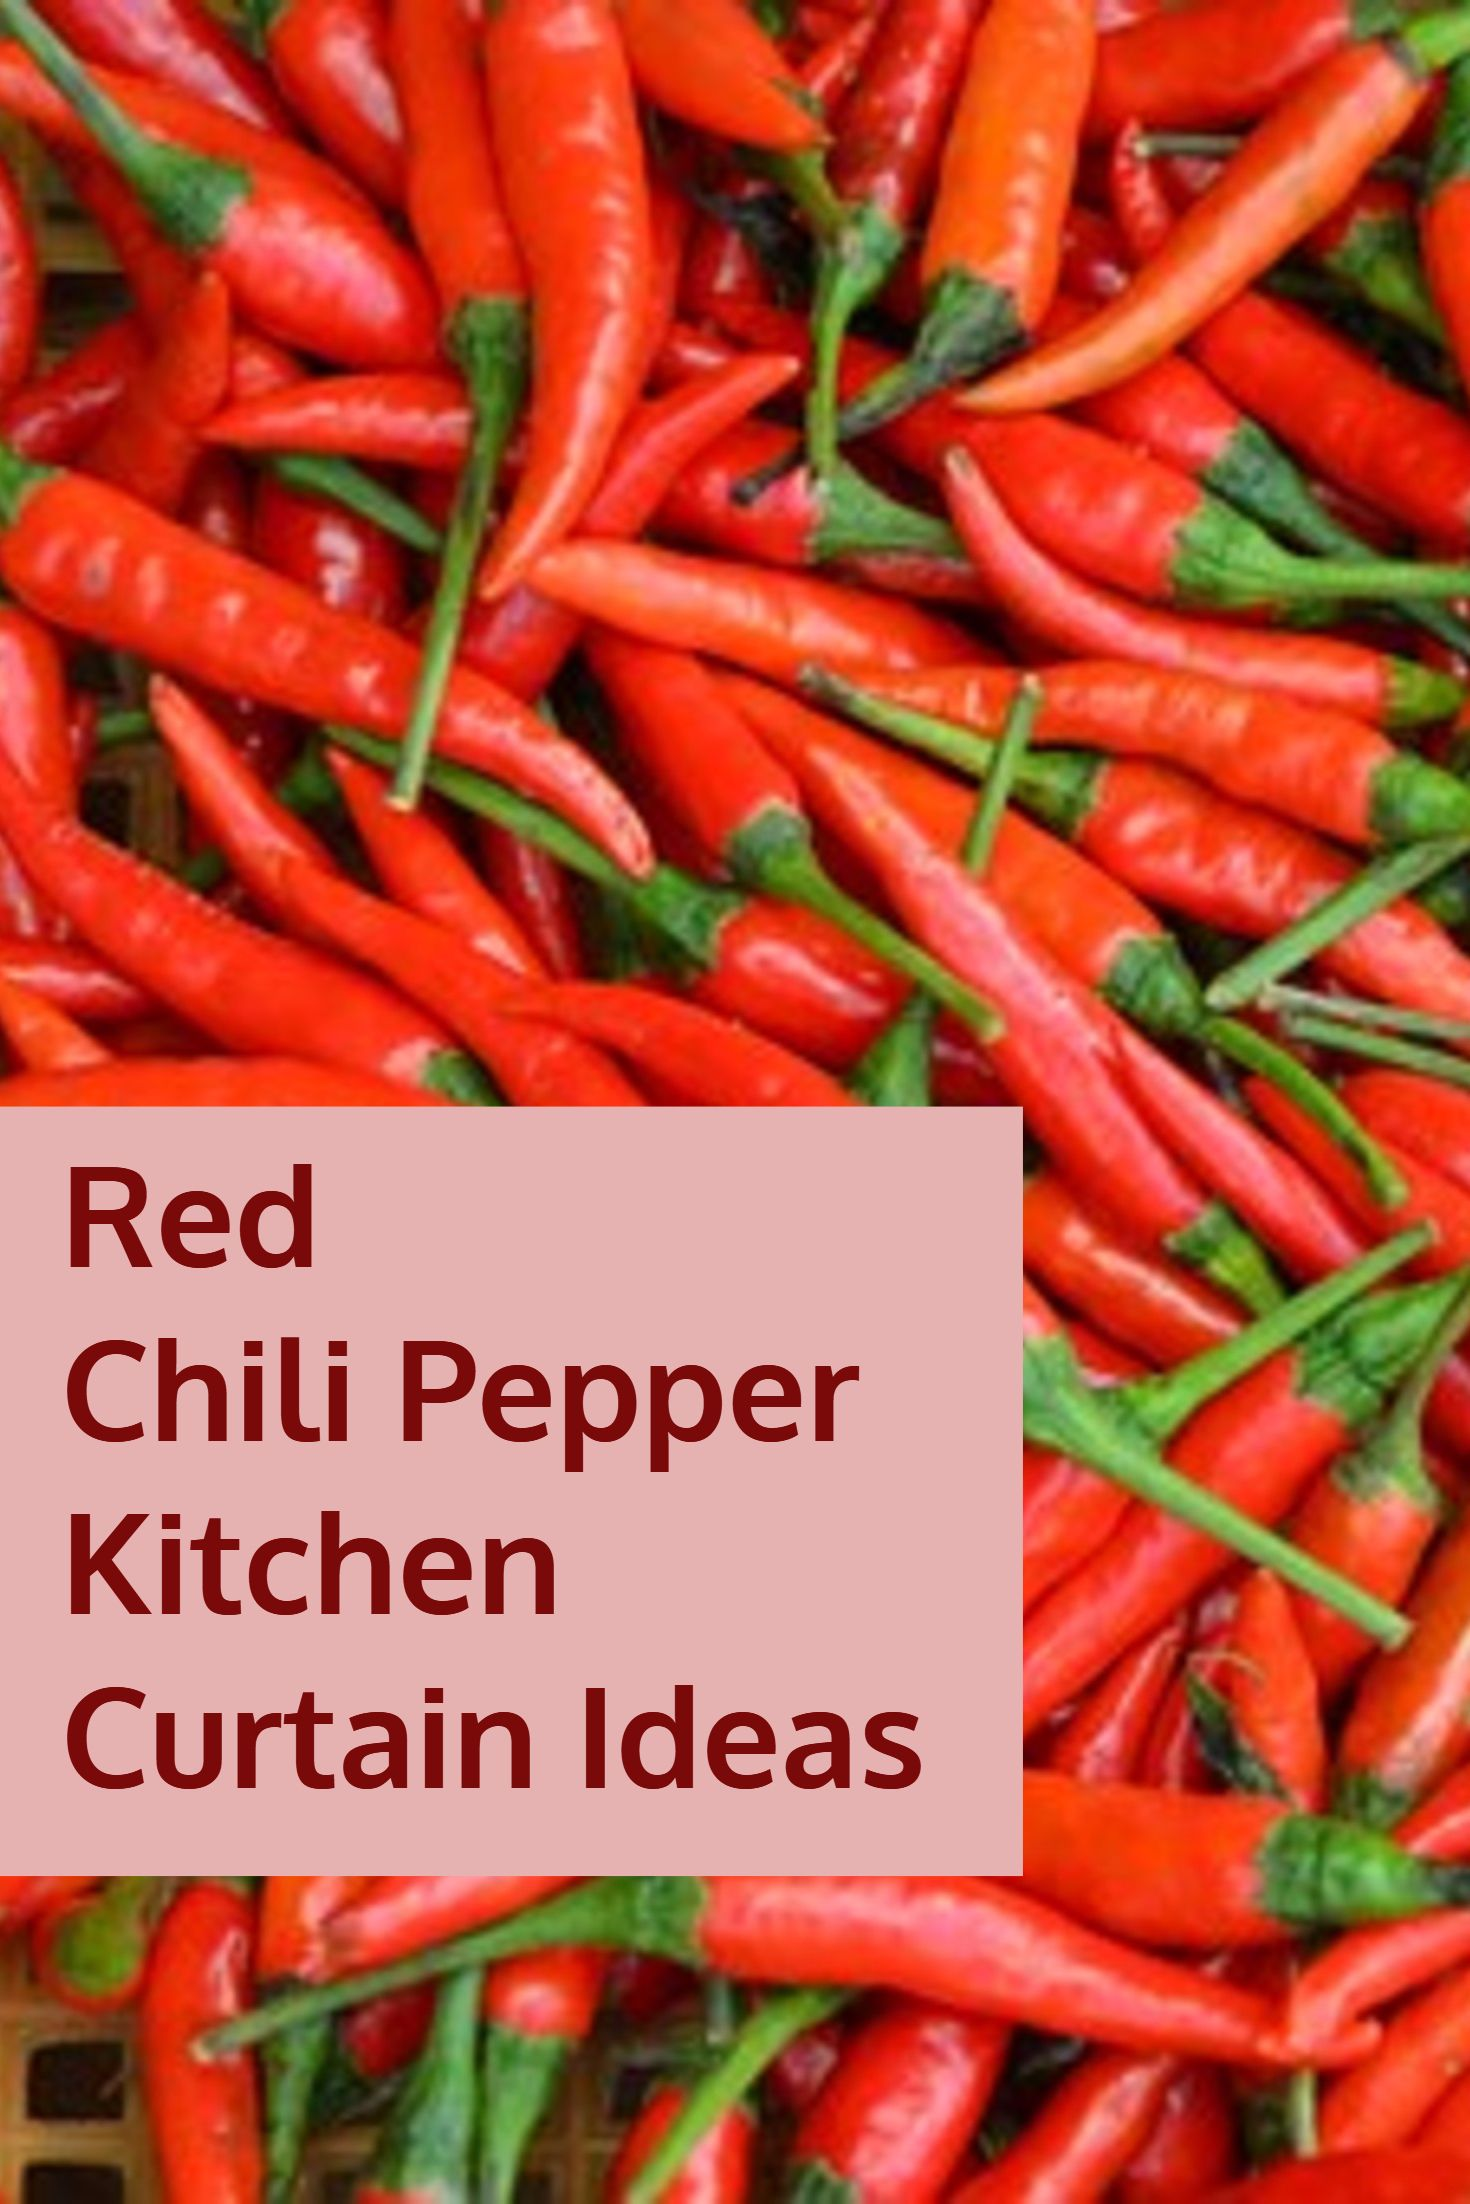 Red Chili Pepper Kitchen Curtain Ideas These Red Chili Kitchen